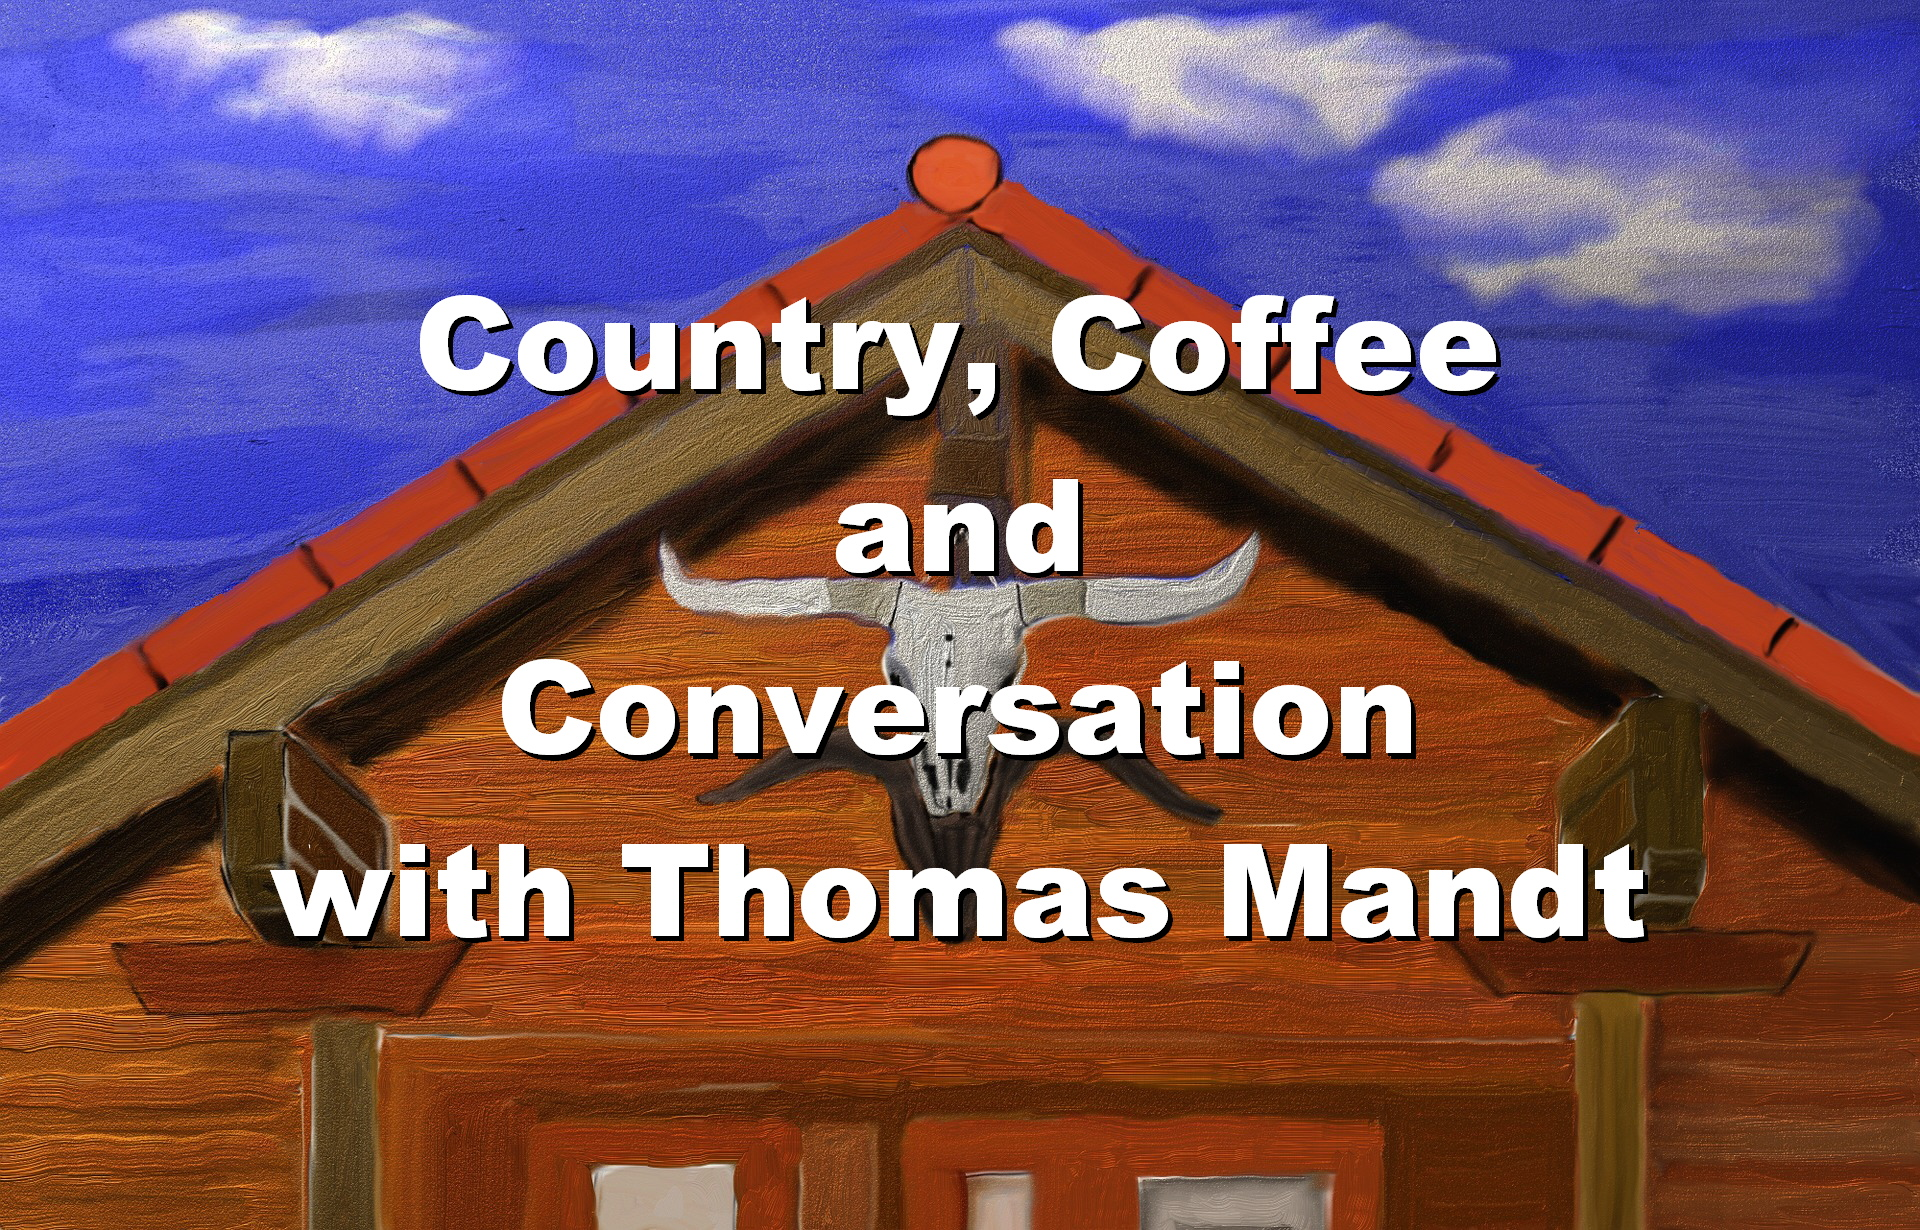 Newsbilder: country_coffee_thomas.jpg